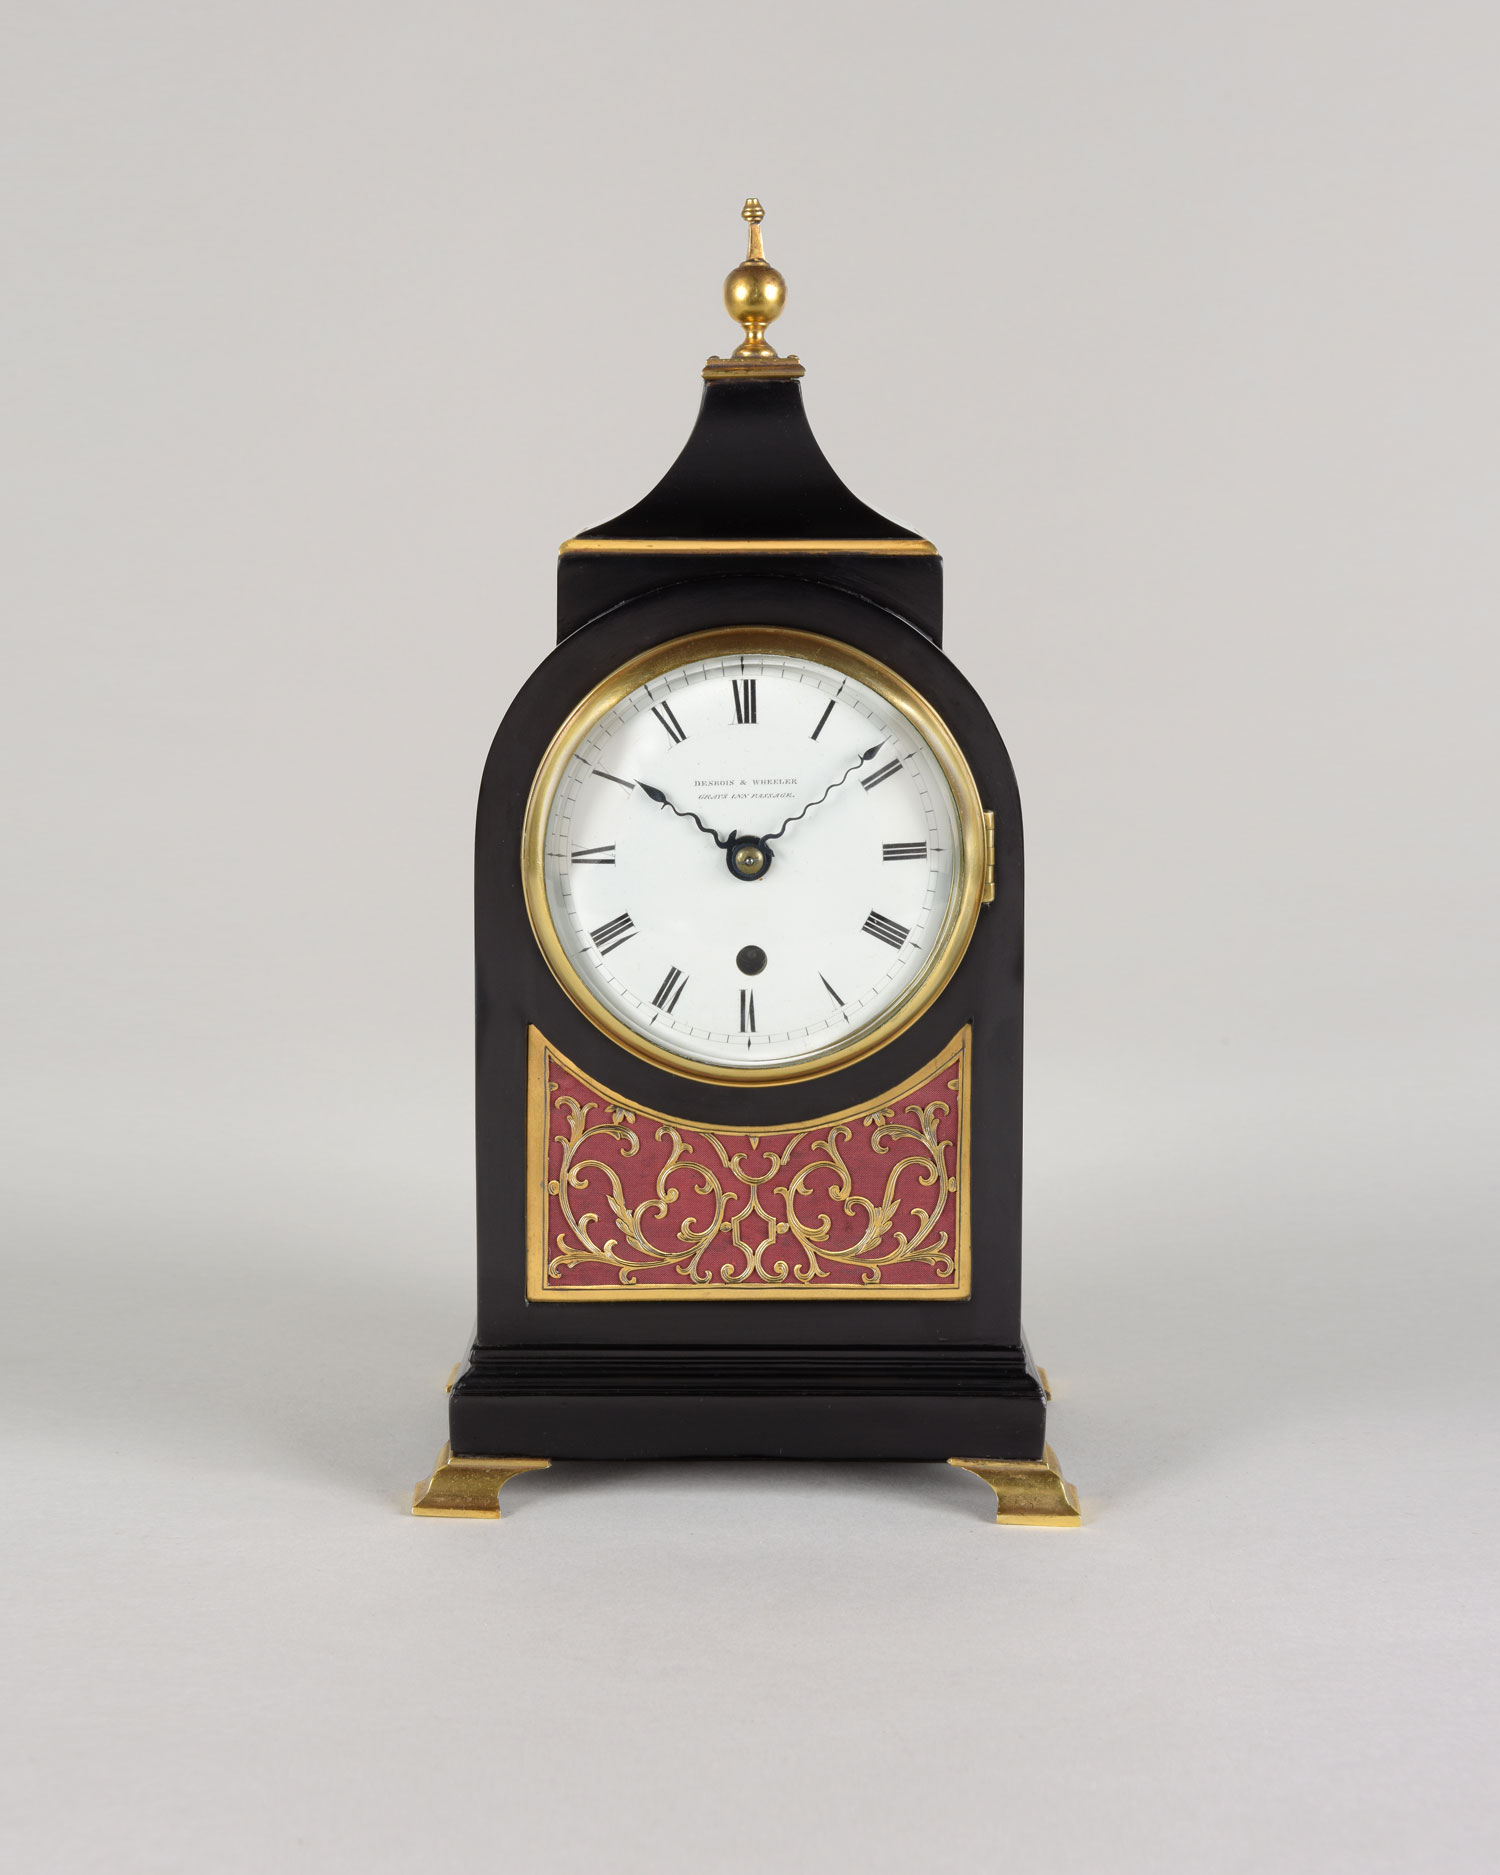 DESBOIS & WHEELER. A small Regency period ebonised mantel clock